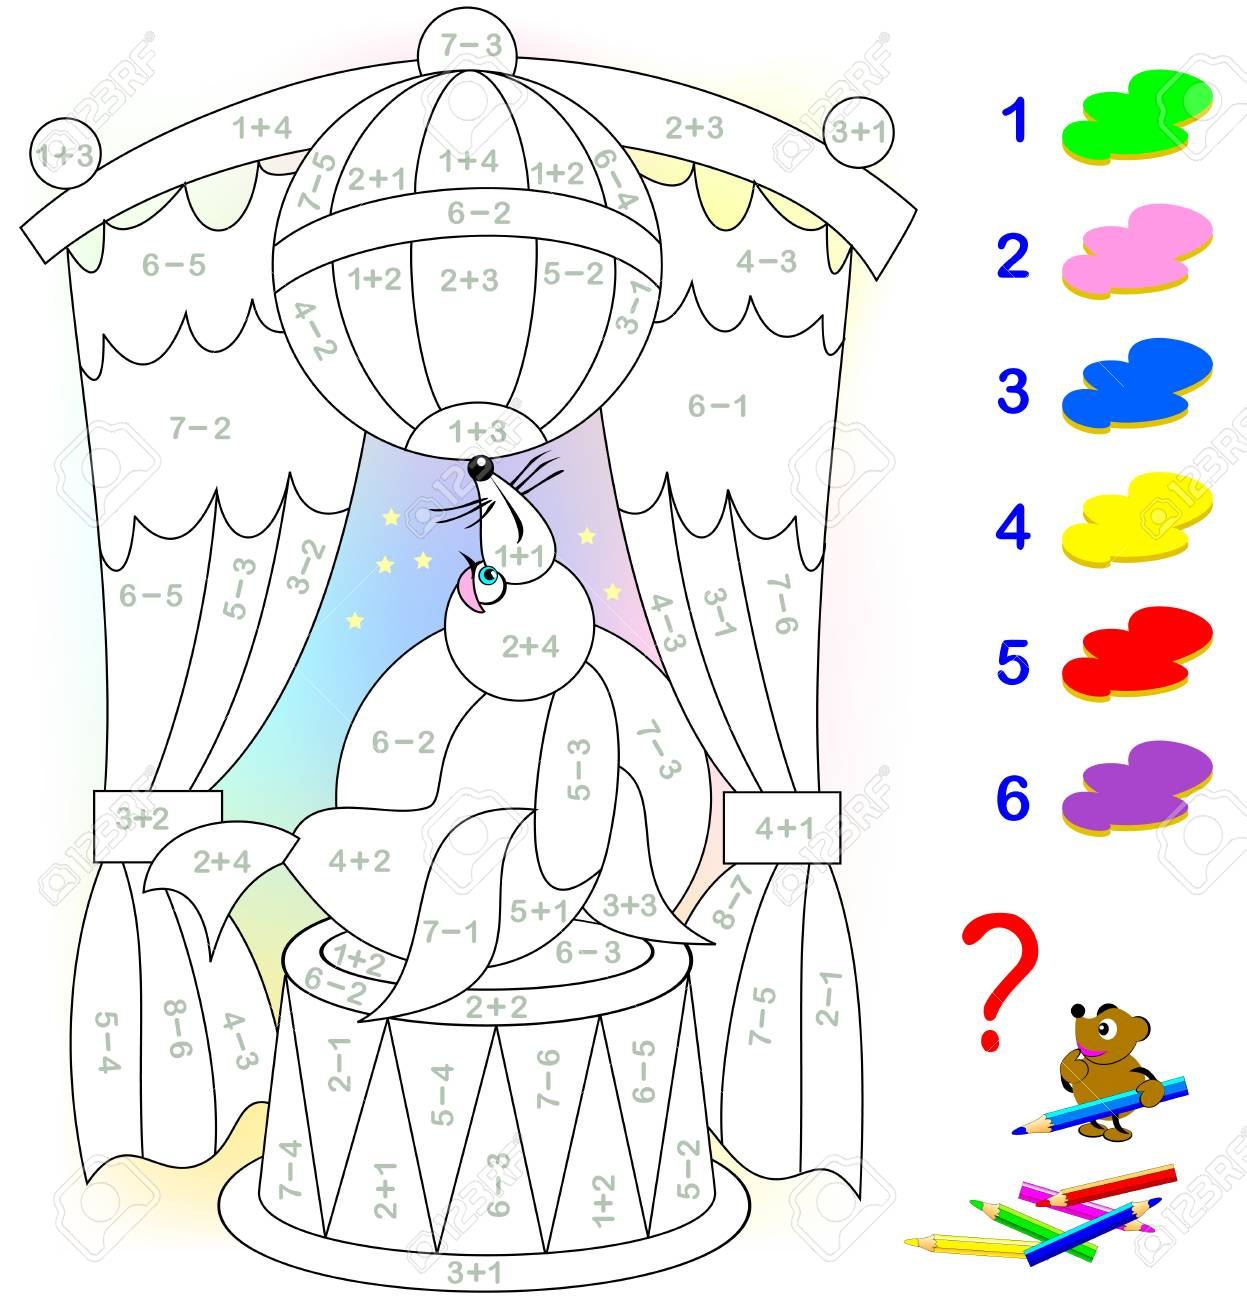 Educational page with exercises for children on addition and subtraction. Need to solve examples and to paint the image in relevant colors. Developing skills for counting. Vector image. - 103012045